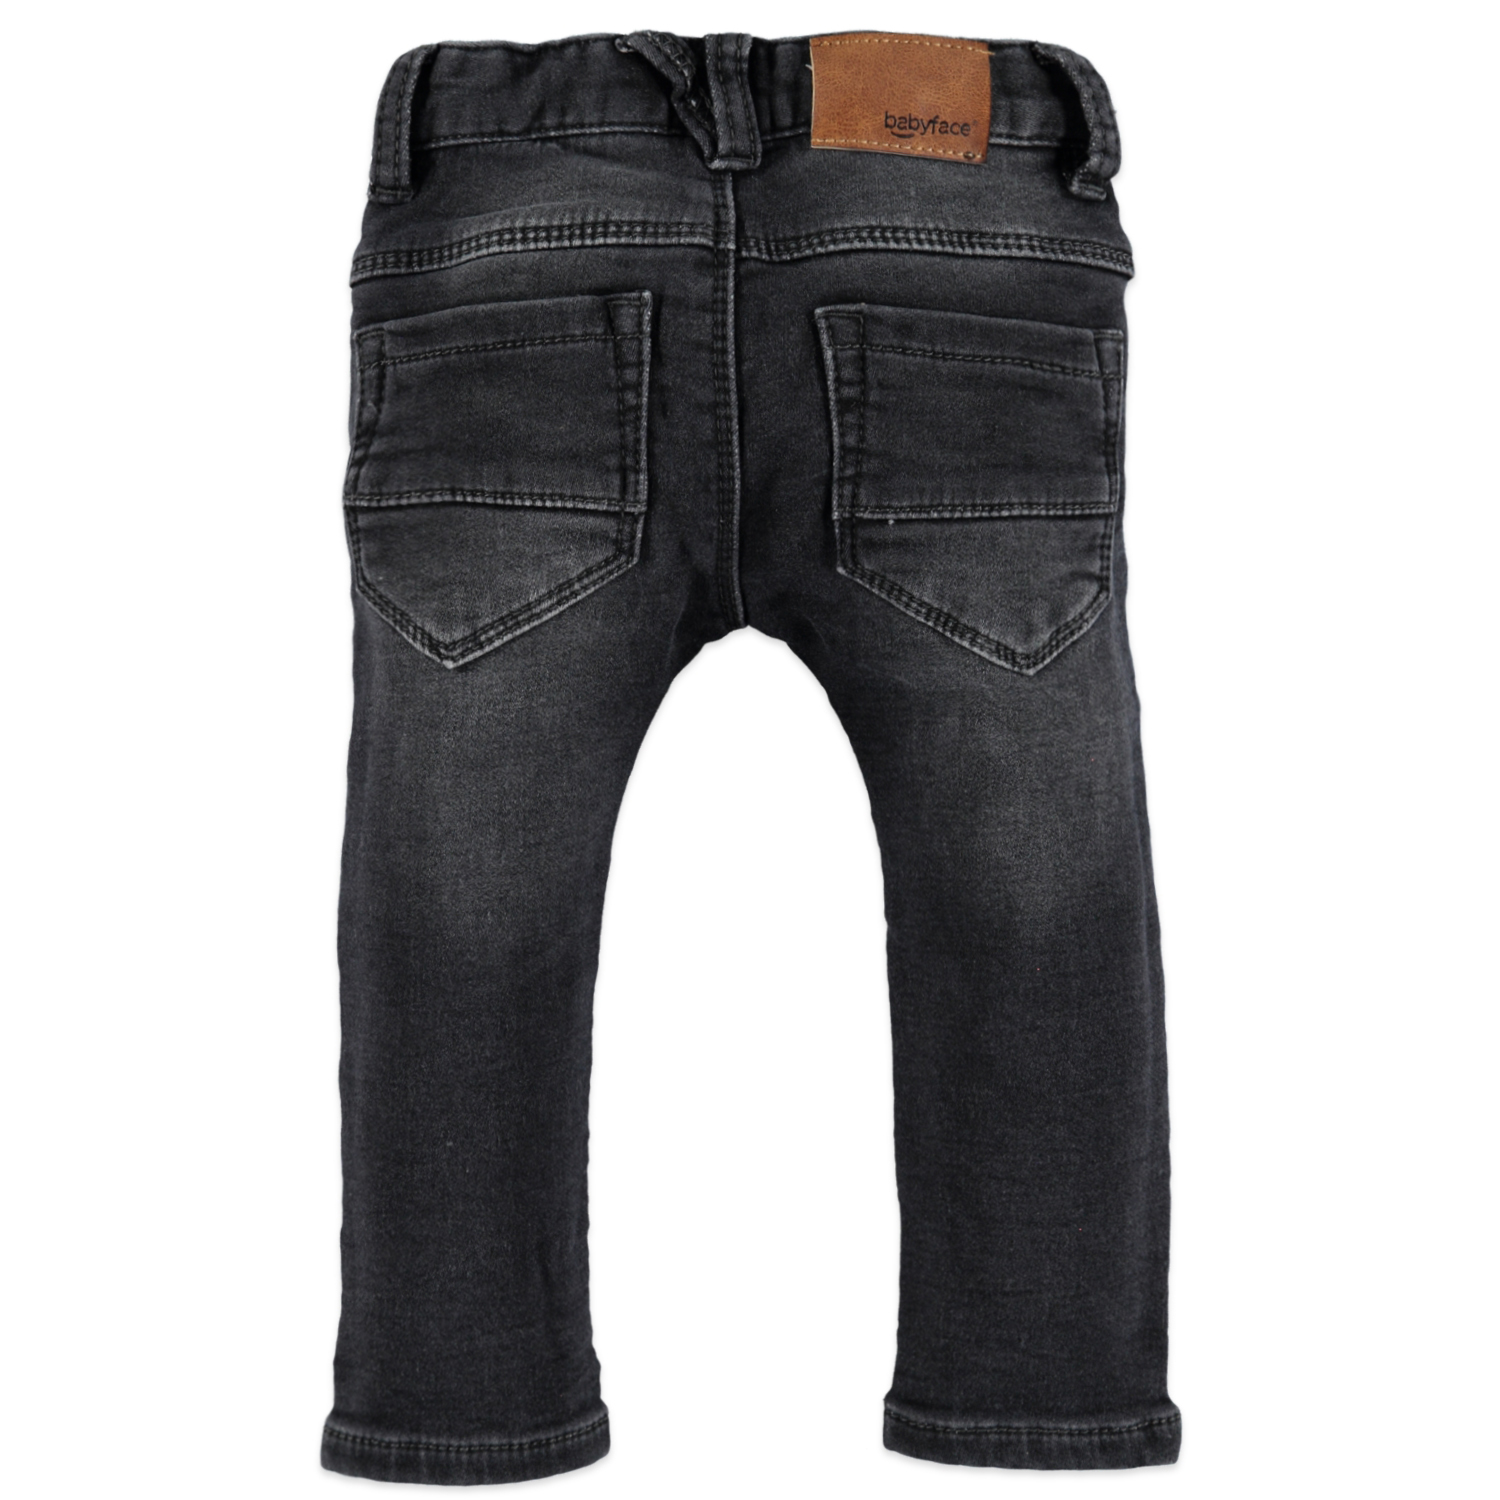 20307273_DarkGreyDenim_back.jpg